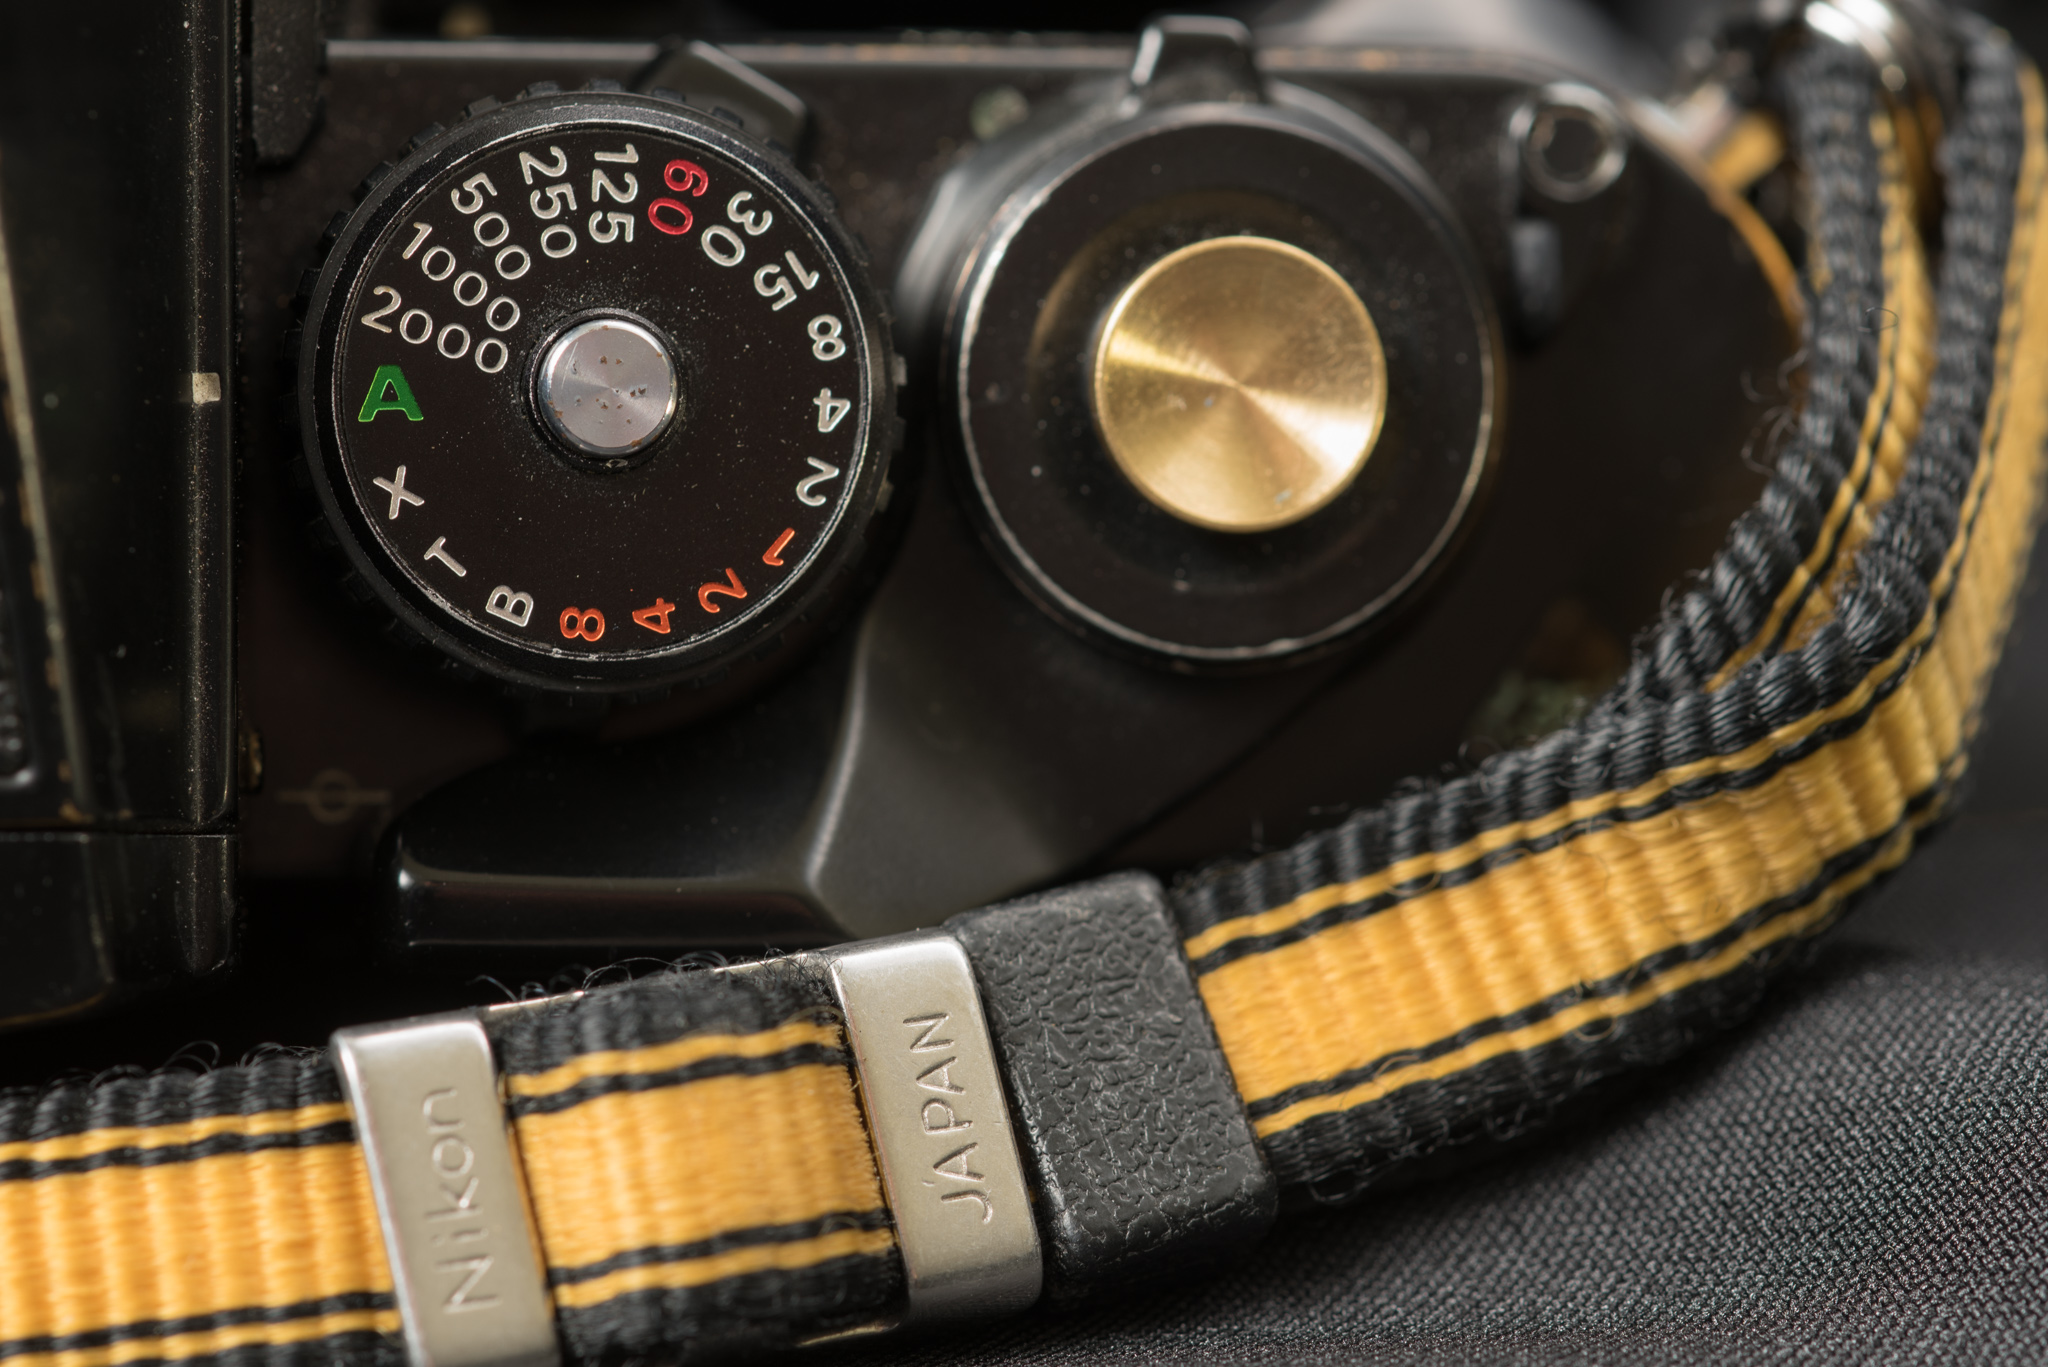 Close-up of top-right controls